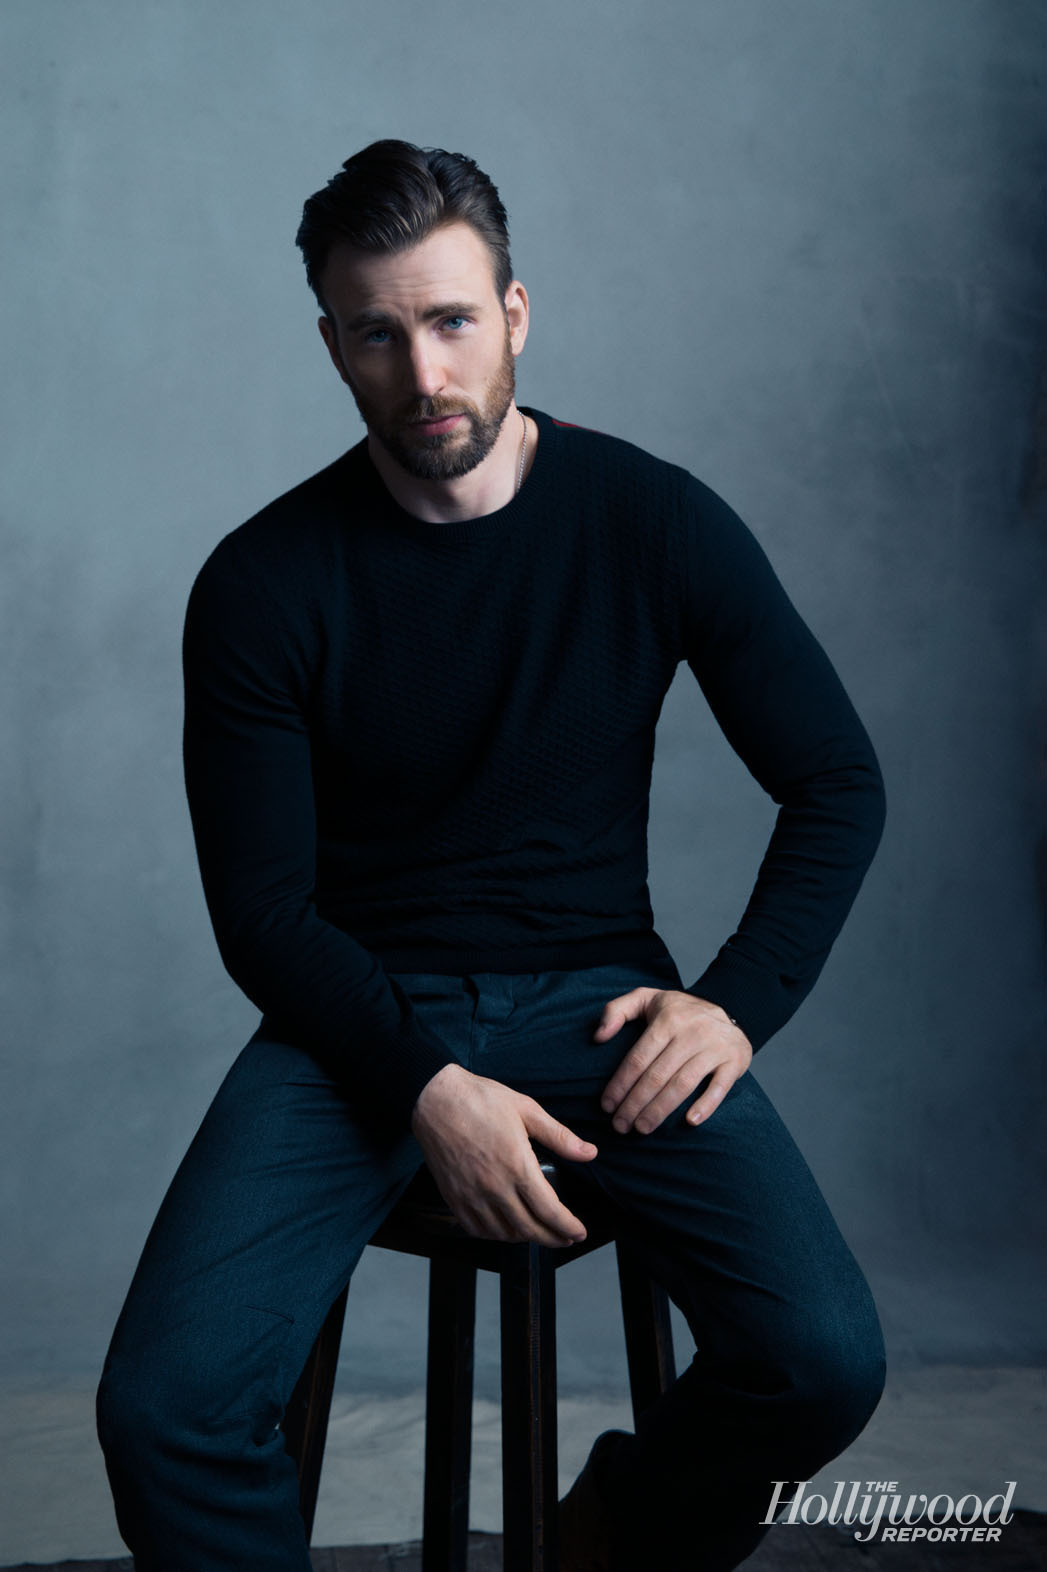 Chris Evans 2014 Photoshoot HD Wallpaper Background Images 1047x1572